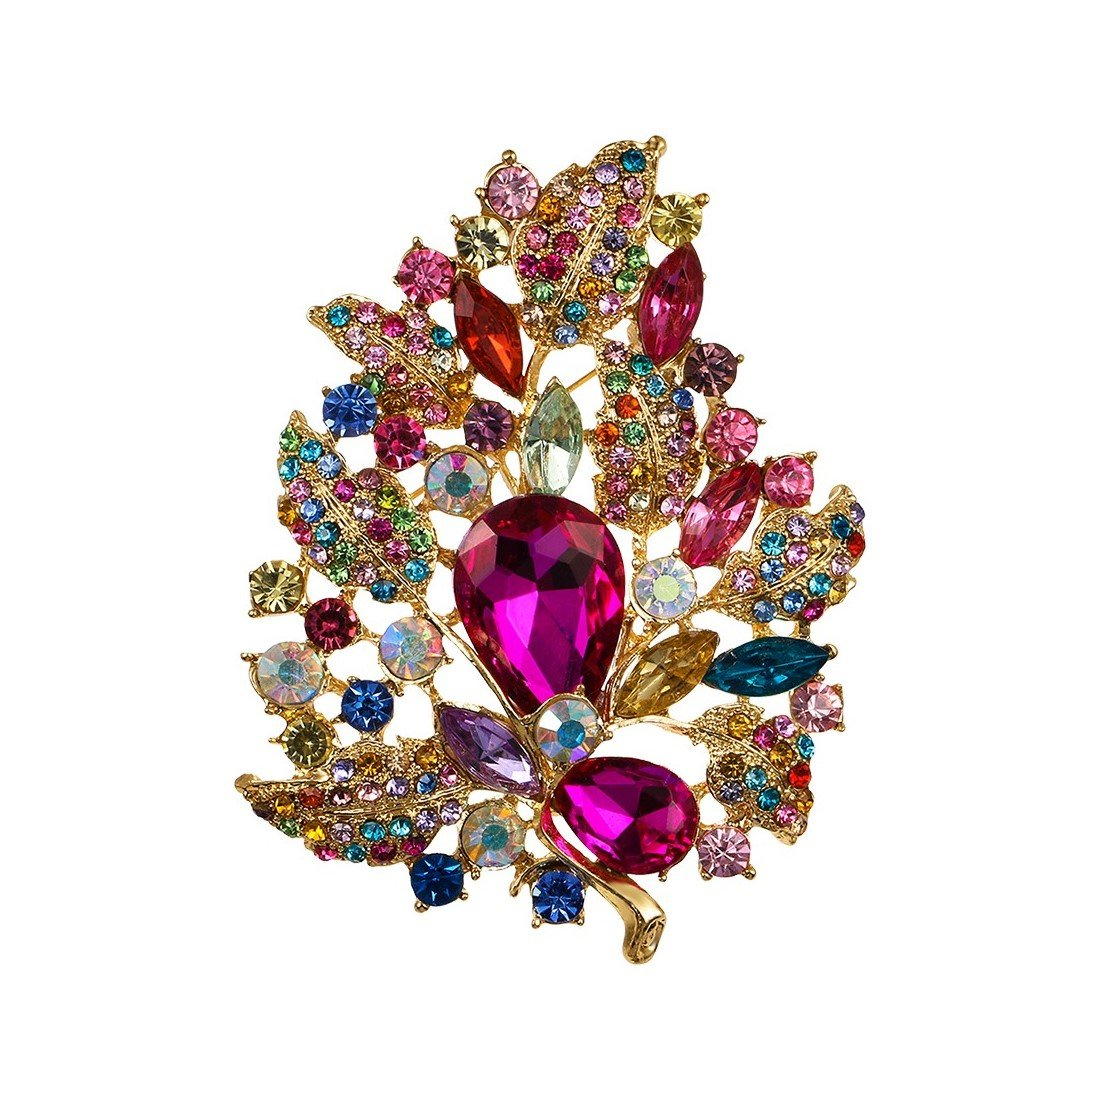 WeimanJewelry Gold Plated Large Rhinestone Glass Crystal Wedding Flower Leaf Bouquet Brooch Pin for Women(Multicolor)